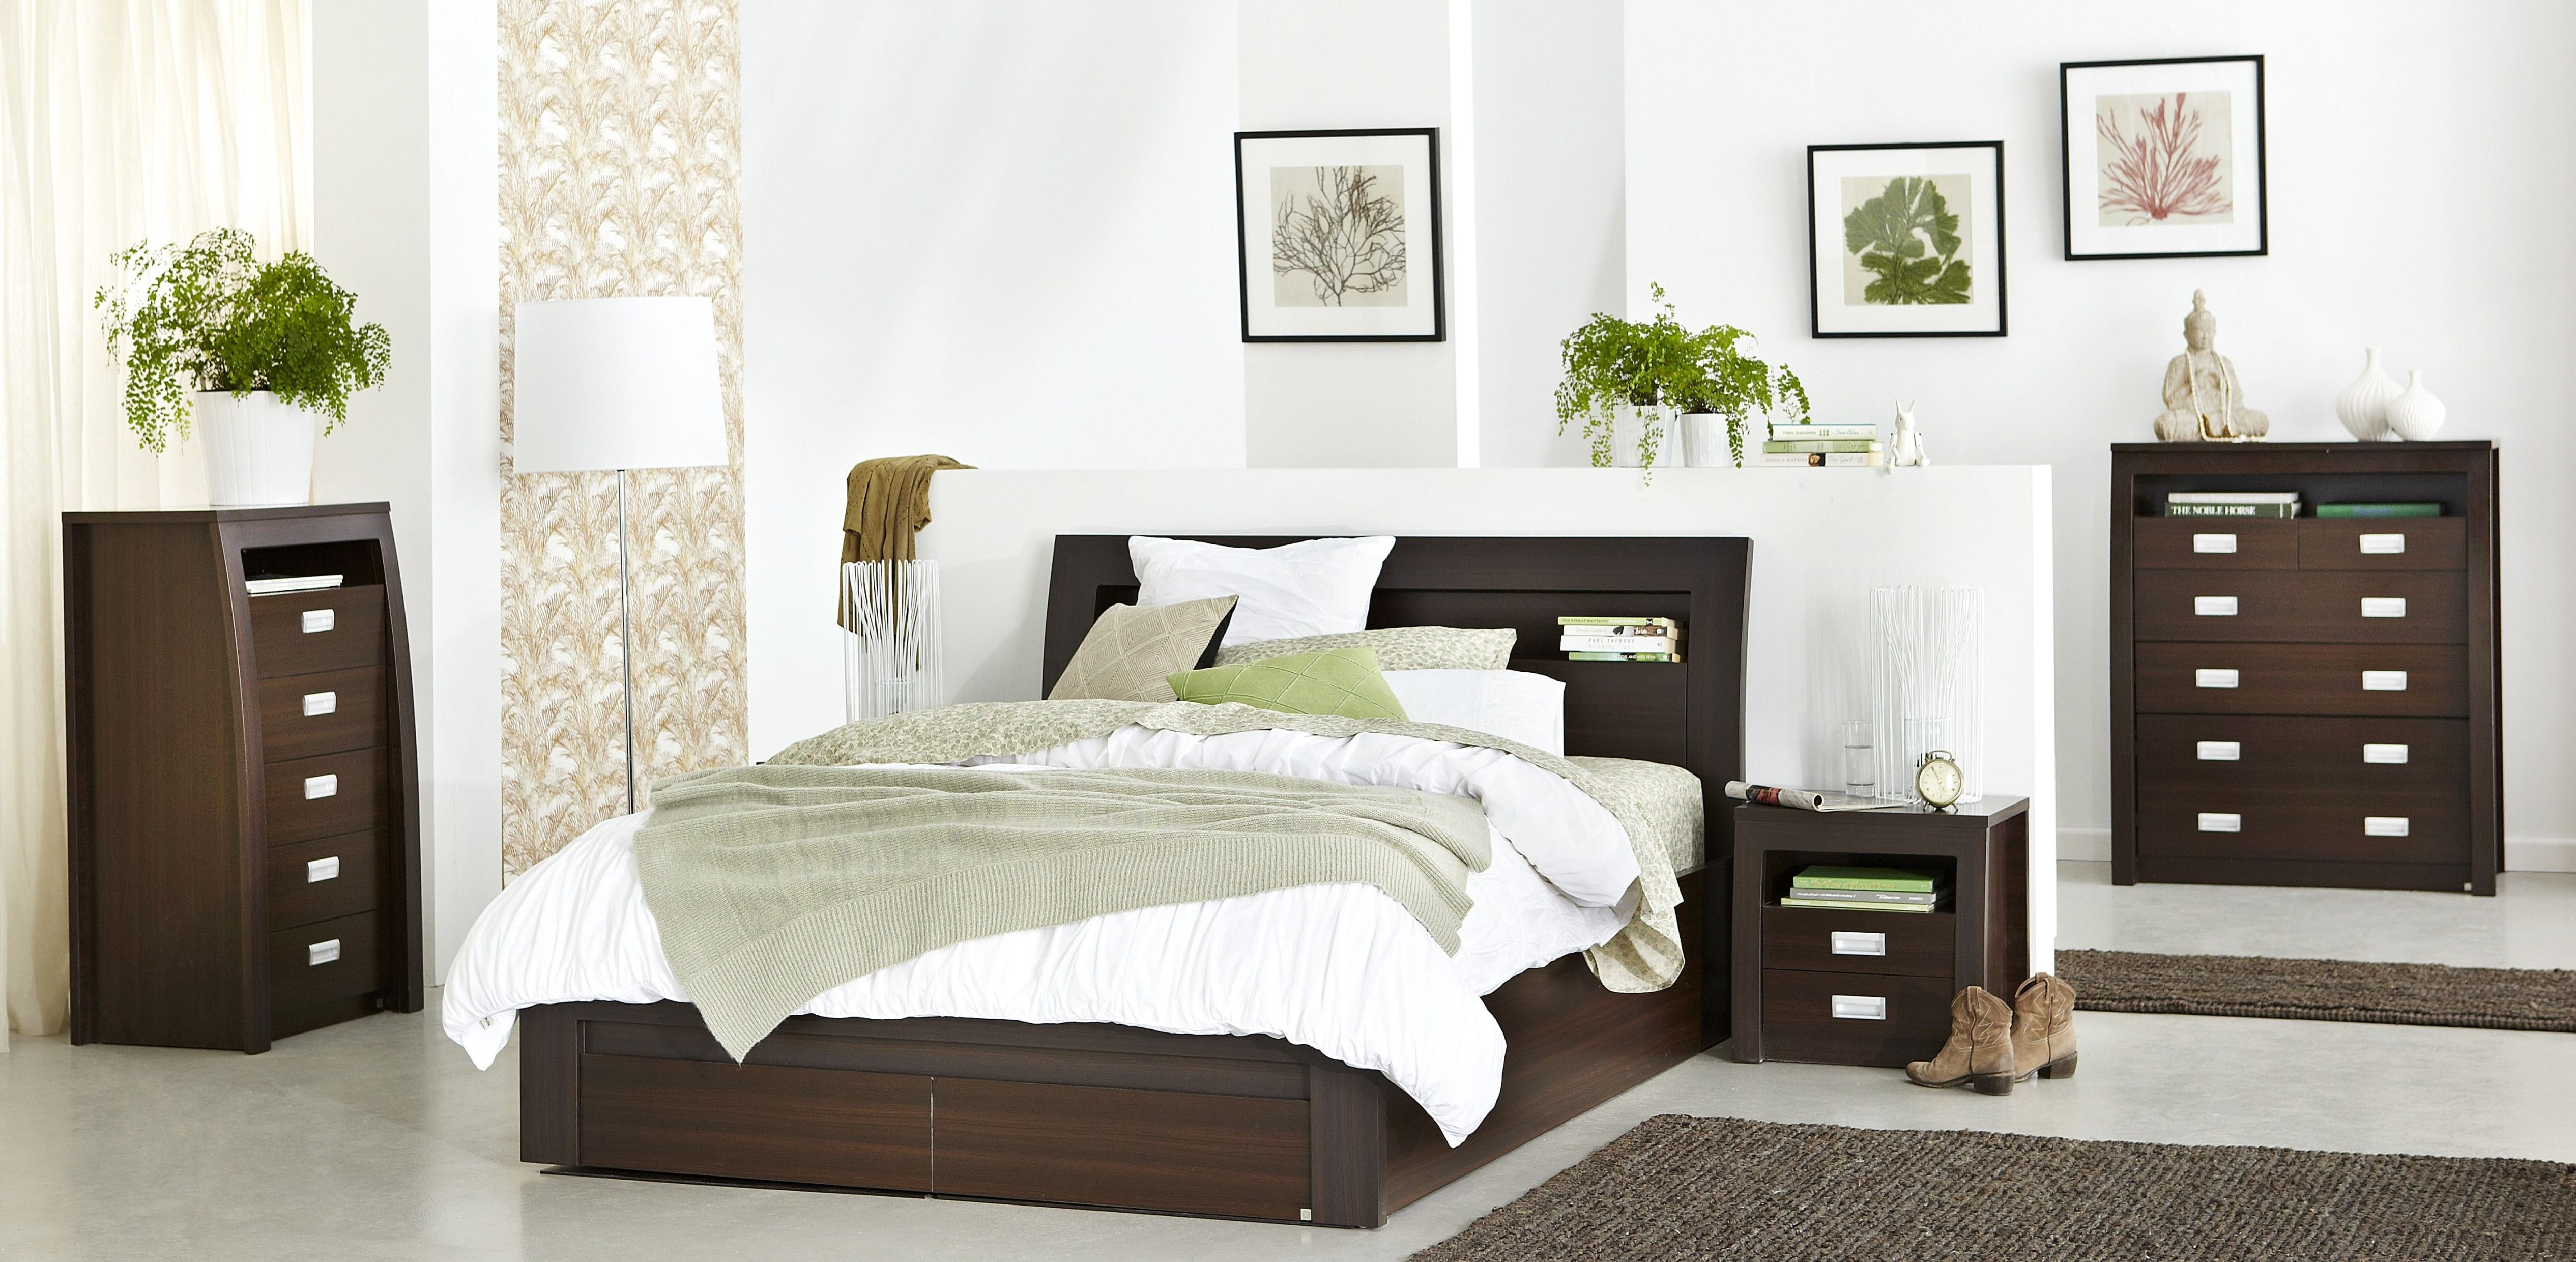 Metropolis Bedroom Furniture Function Style and Grace Bedroom